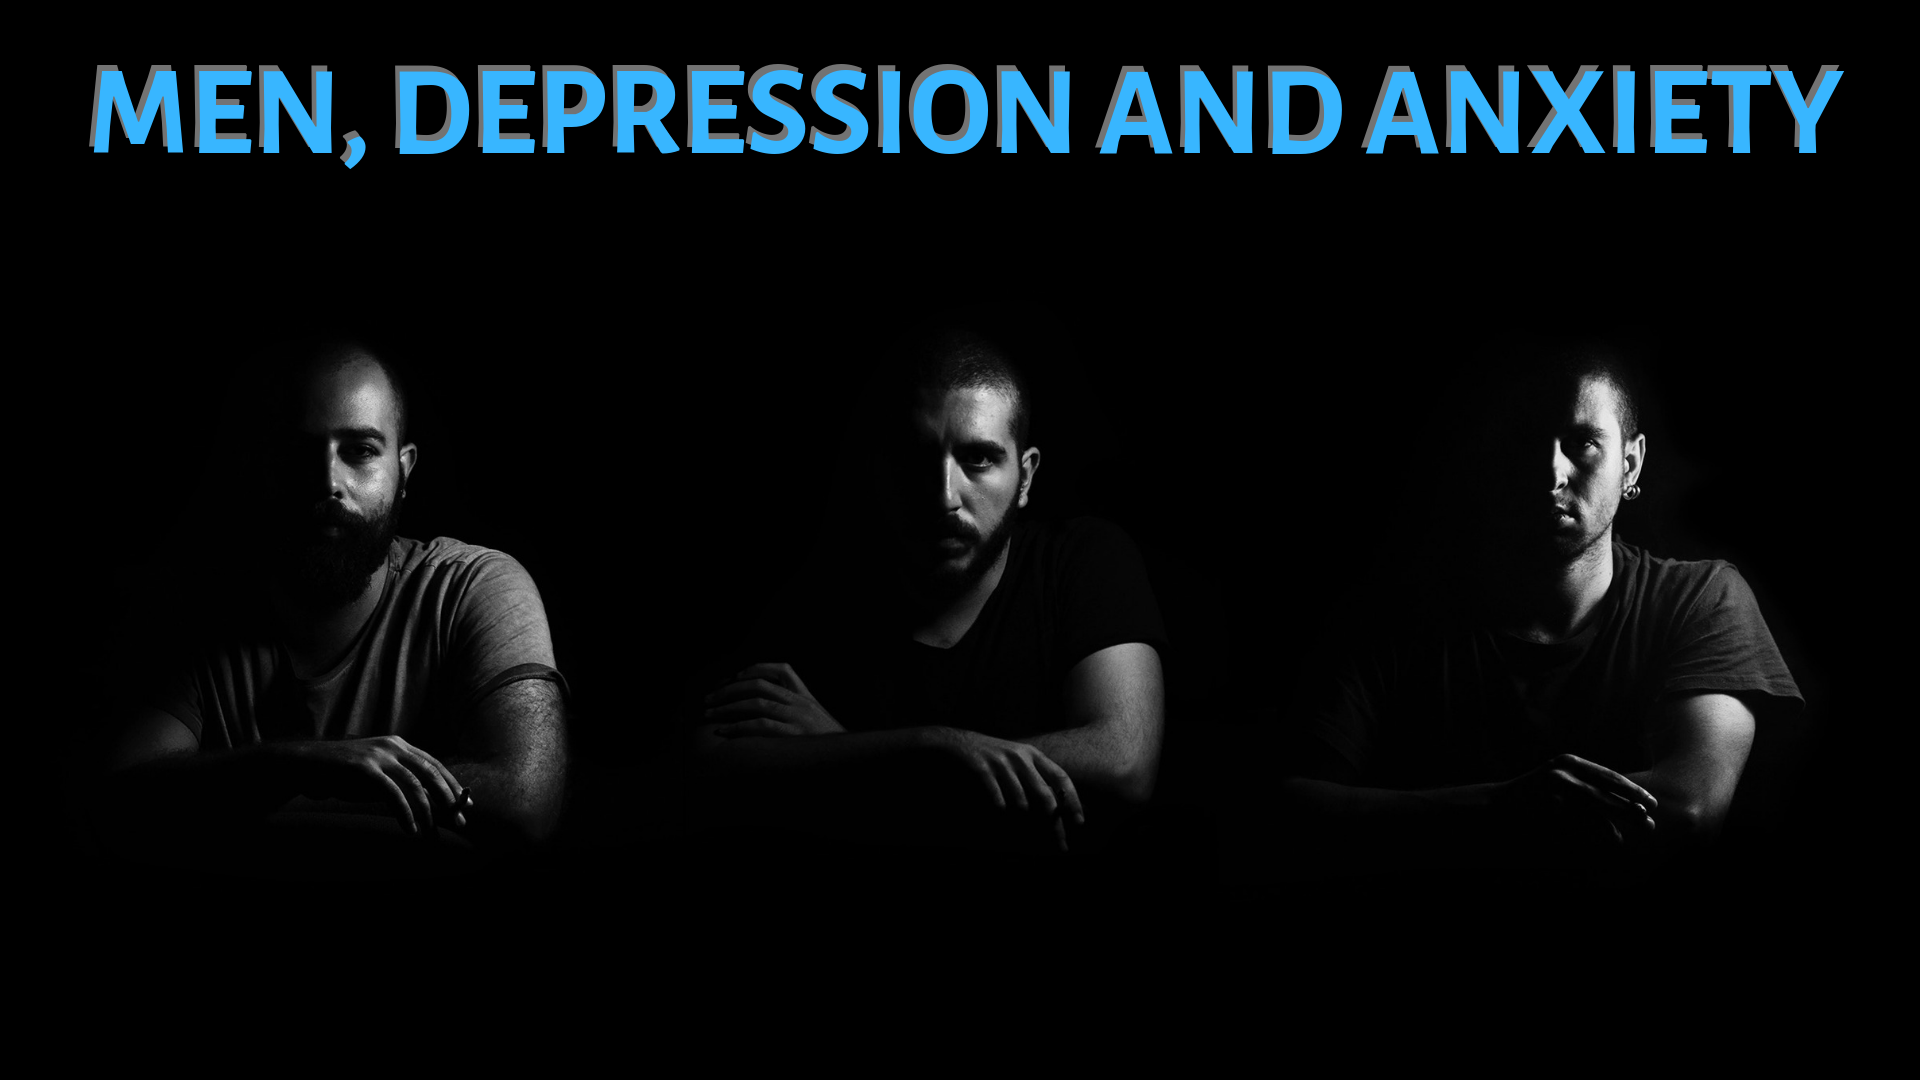 Men, depression and anxiety